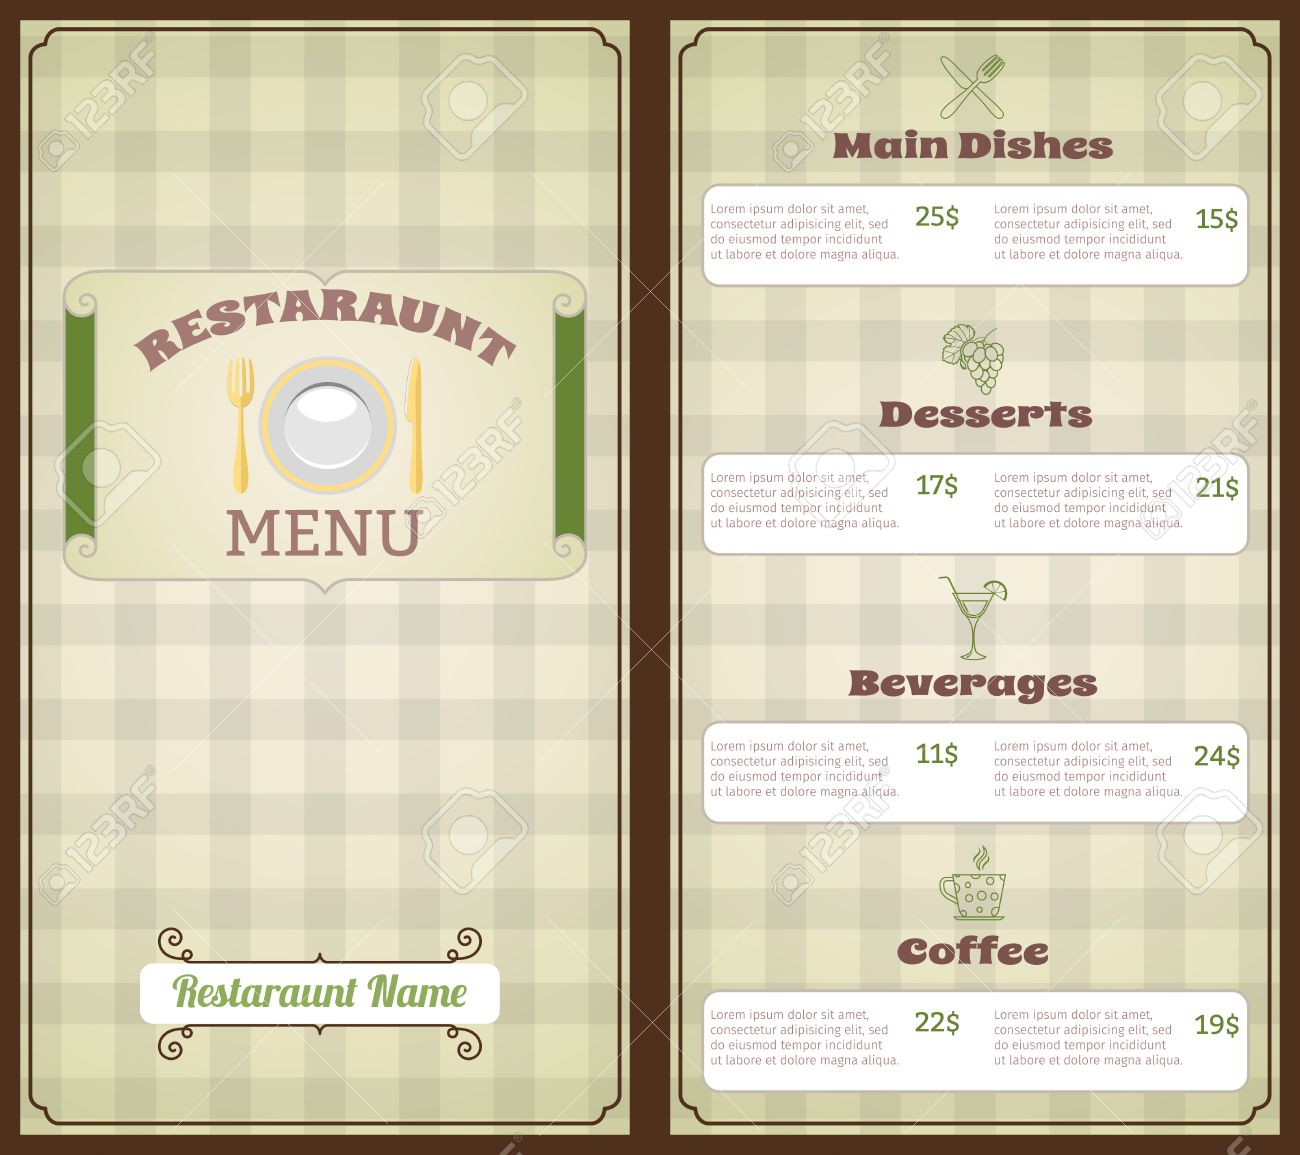 restaurant menu list template with main dishes desserts beverages